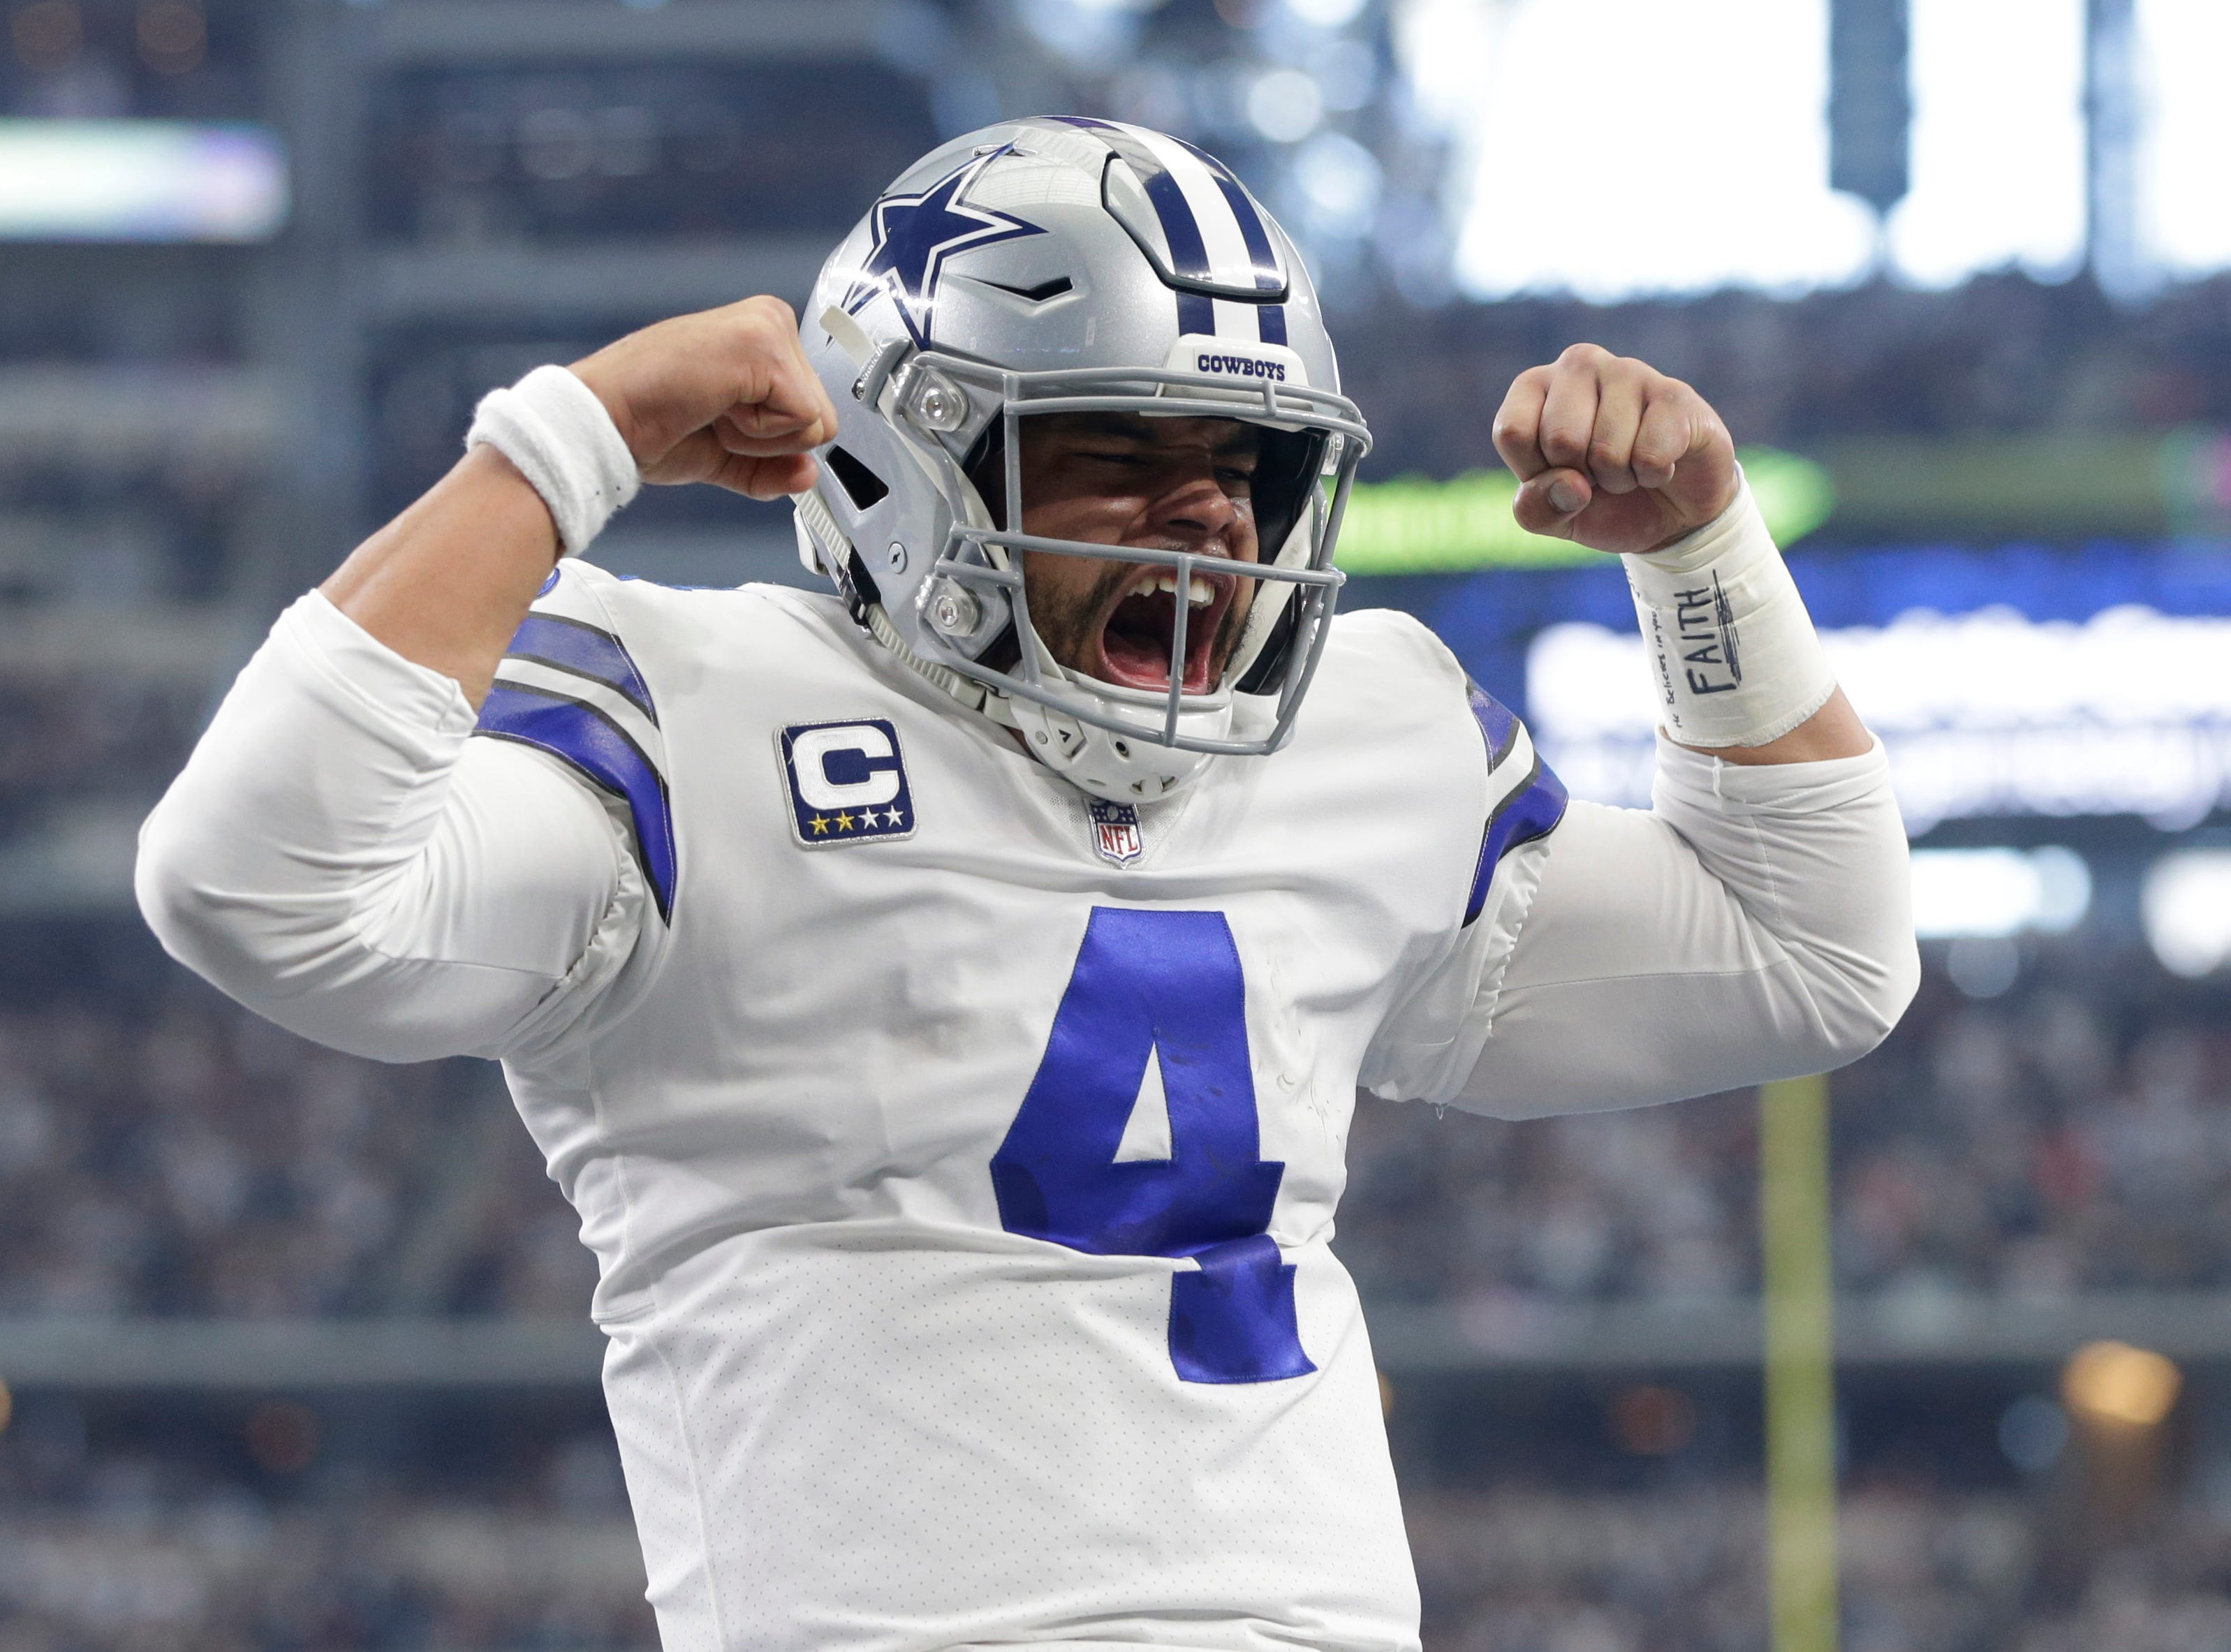 Dec. 23: Dallas Cowboys quarterback Dak Prescott reacts after running for a touchdown in the first quarter against the Tampa Bay Buccaneers at AT&T Stadium.